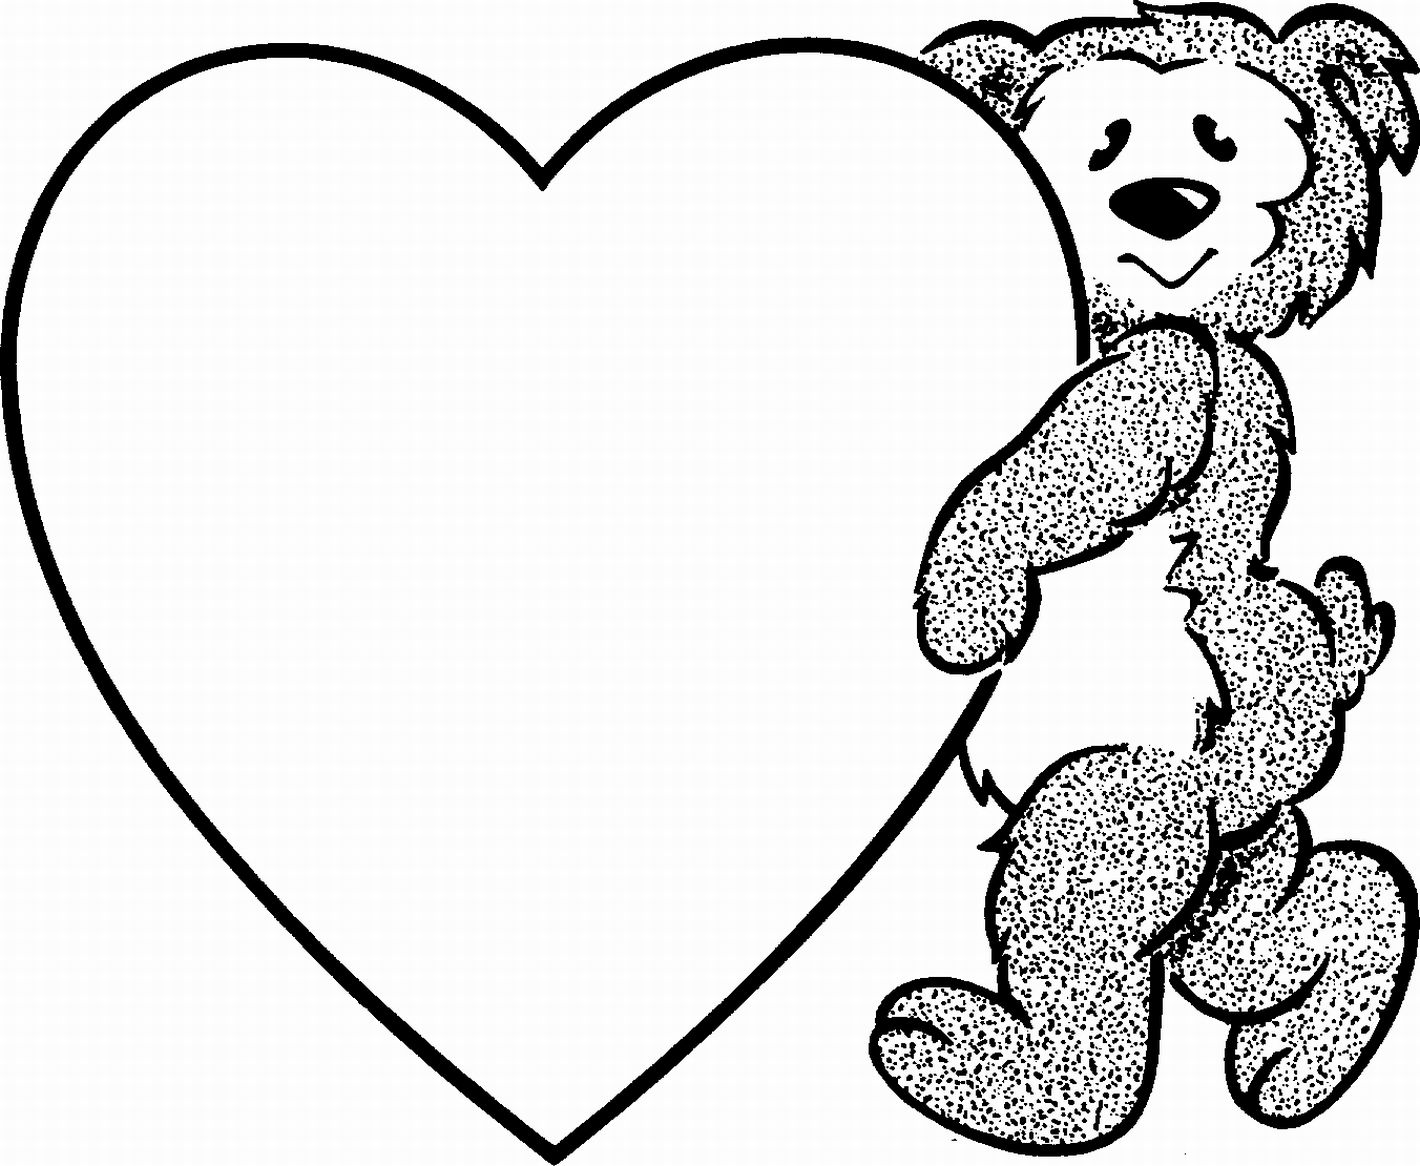 i love you teddy bear clipart - Heart Coloring Pages For Teenagers